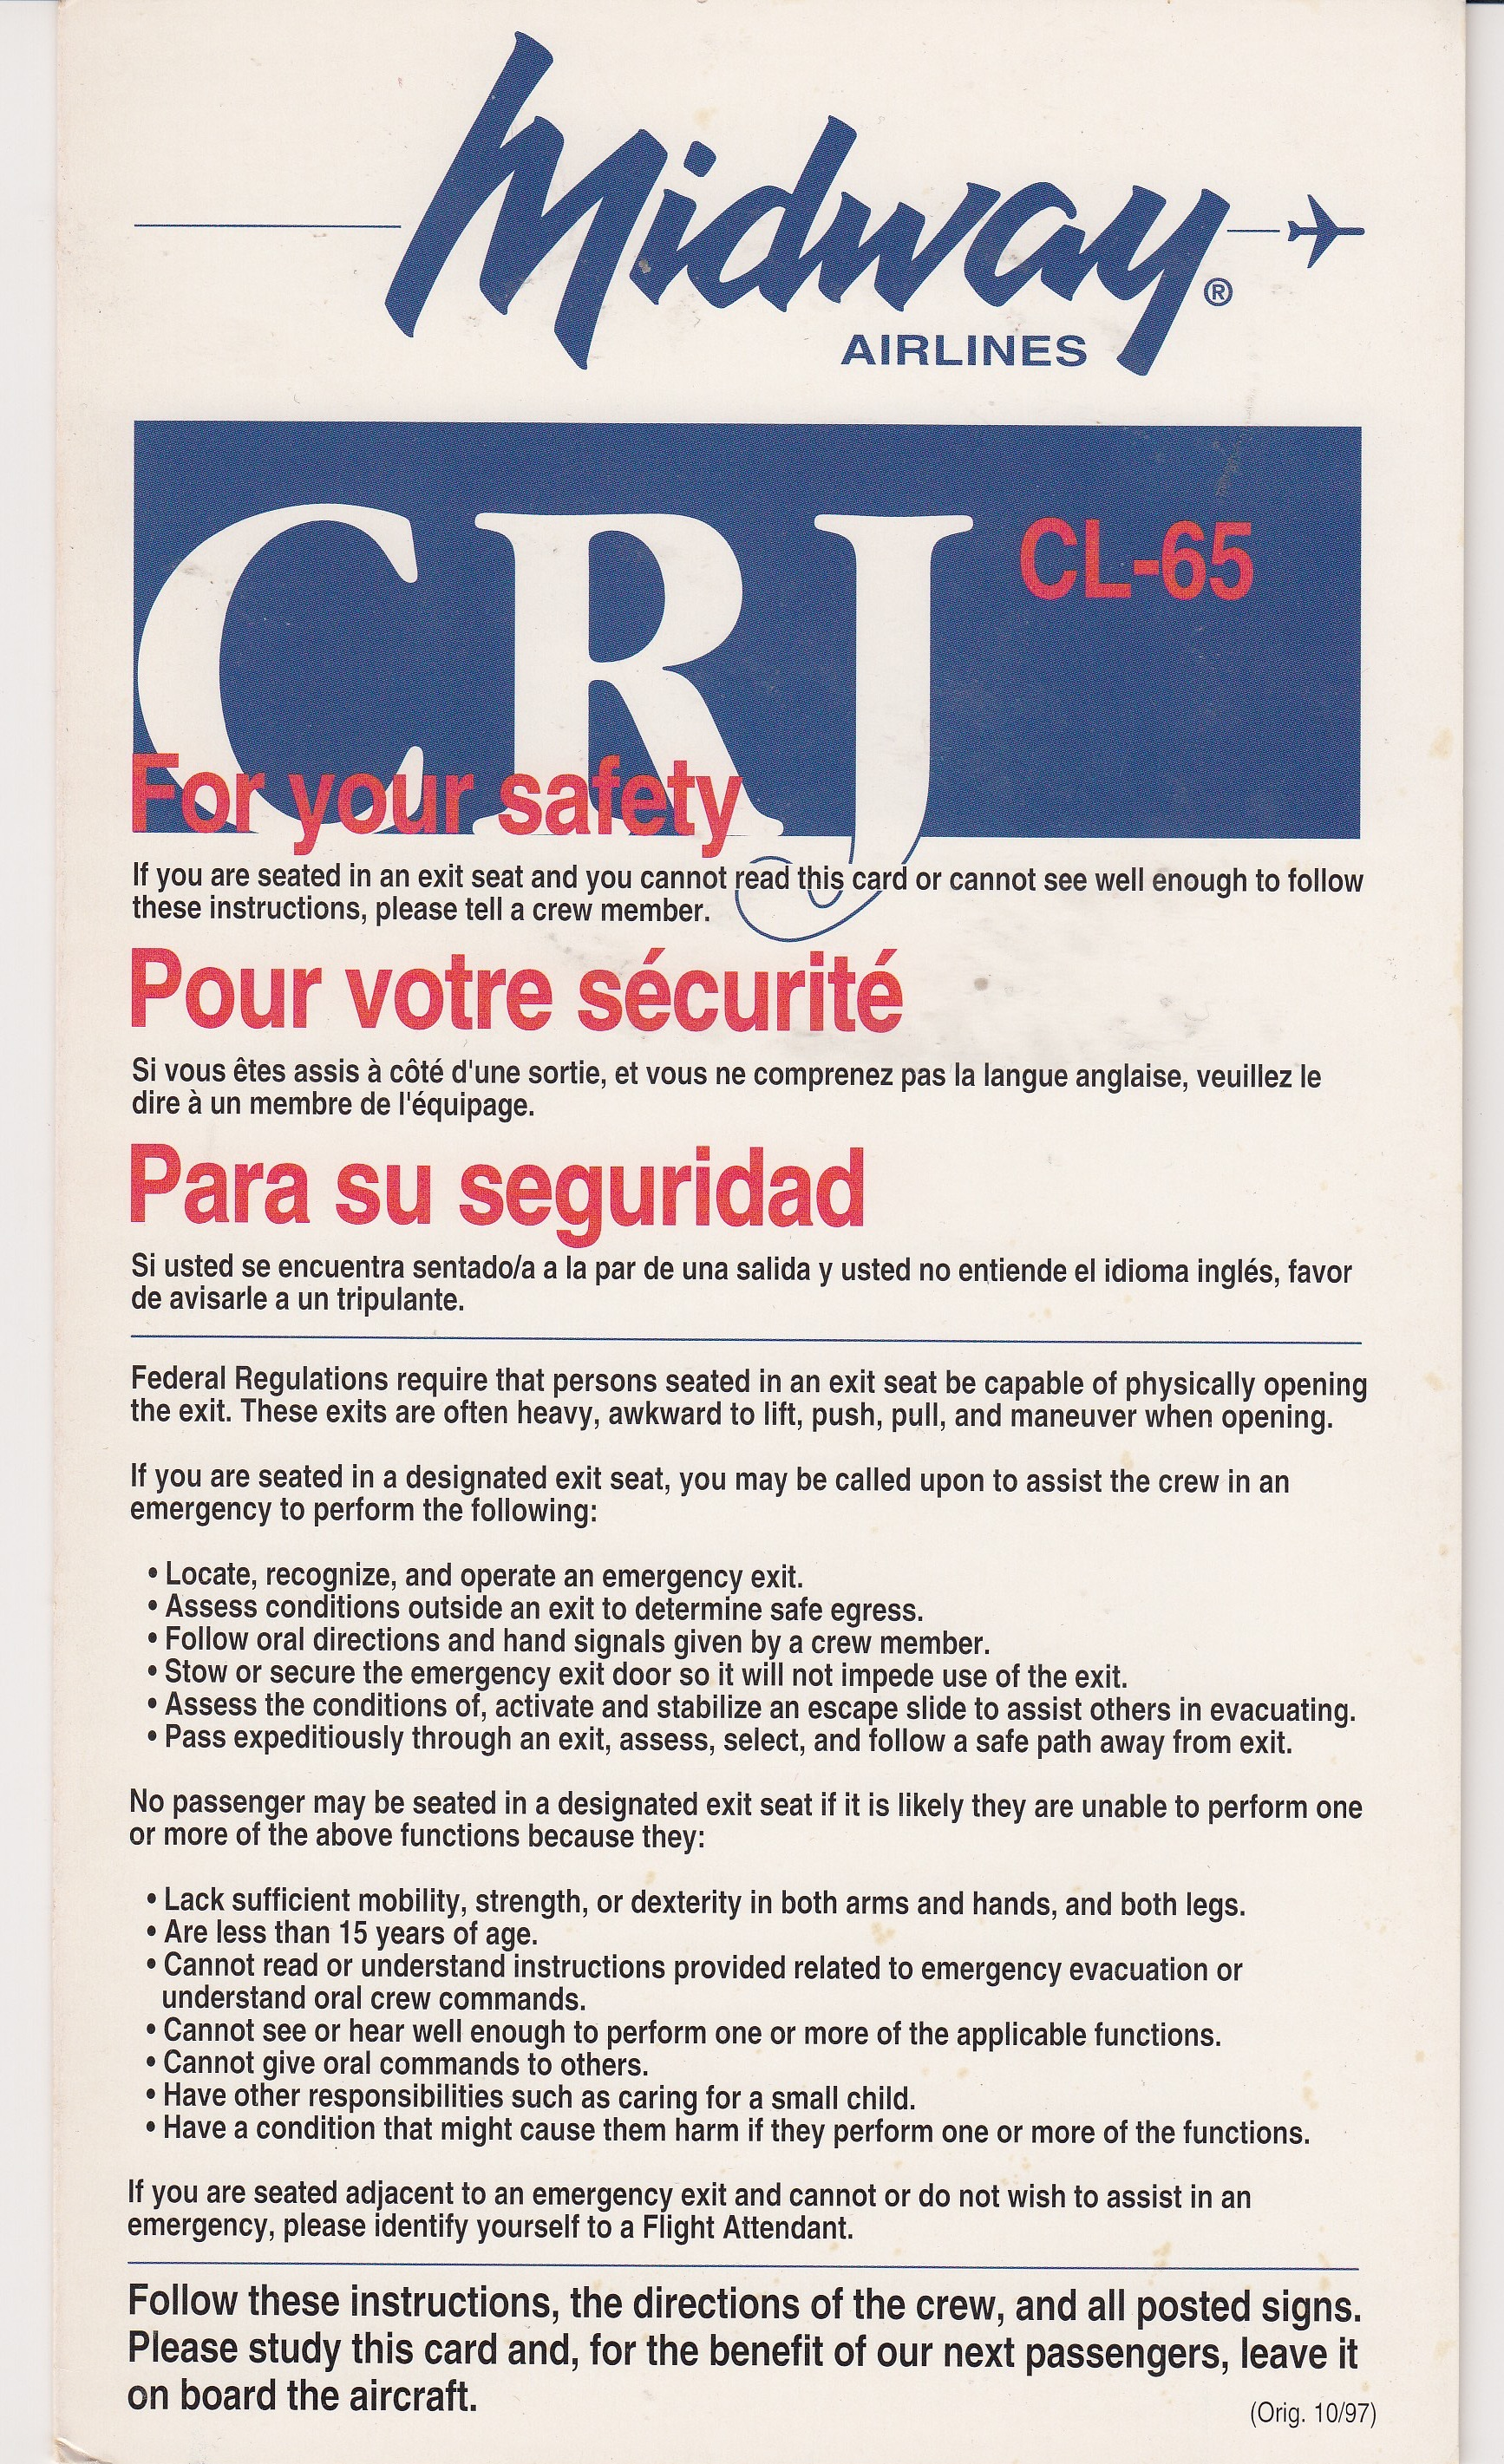 Midway Airlines CRJ CL-45 Safety Card